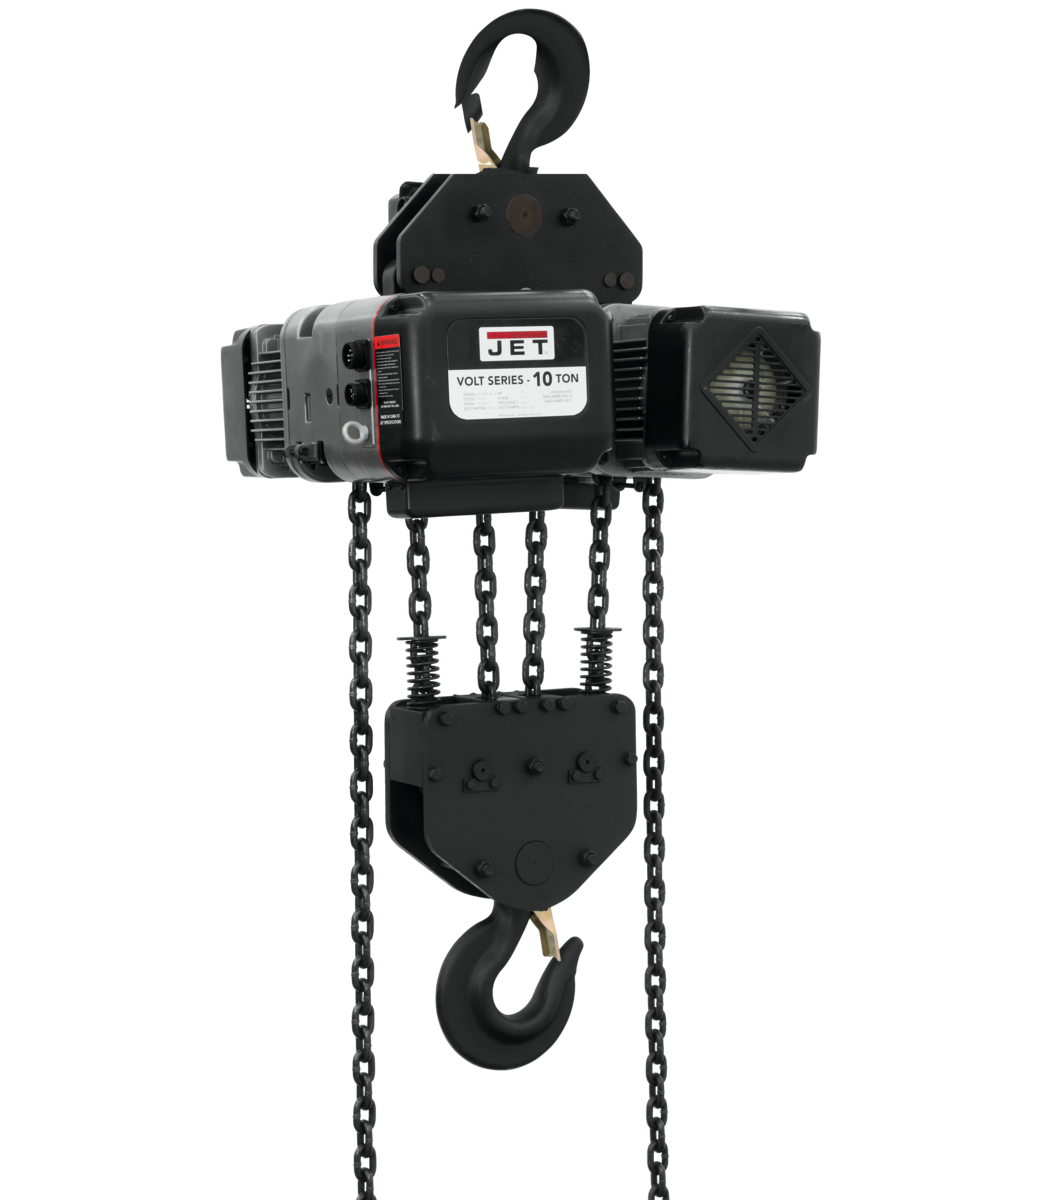 VOLT 10T VARIABLE-SPEED ELECTRIC HOIST  3PH 230V 15' LIFT